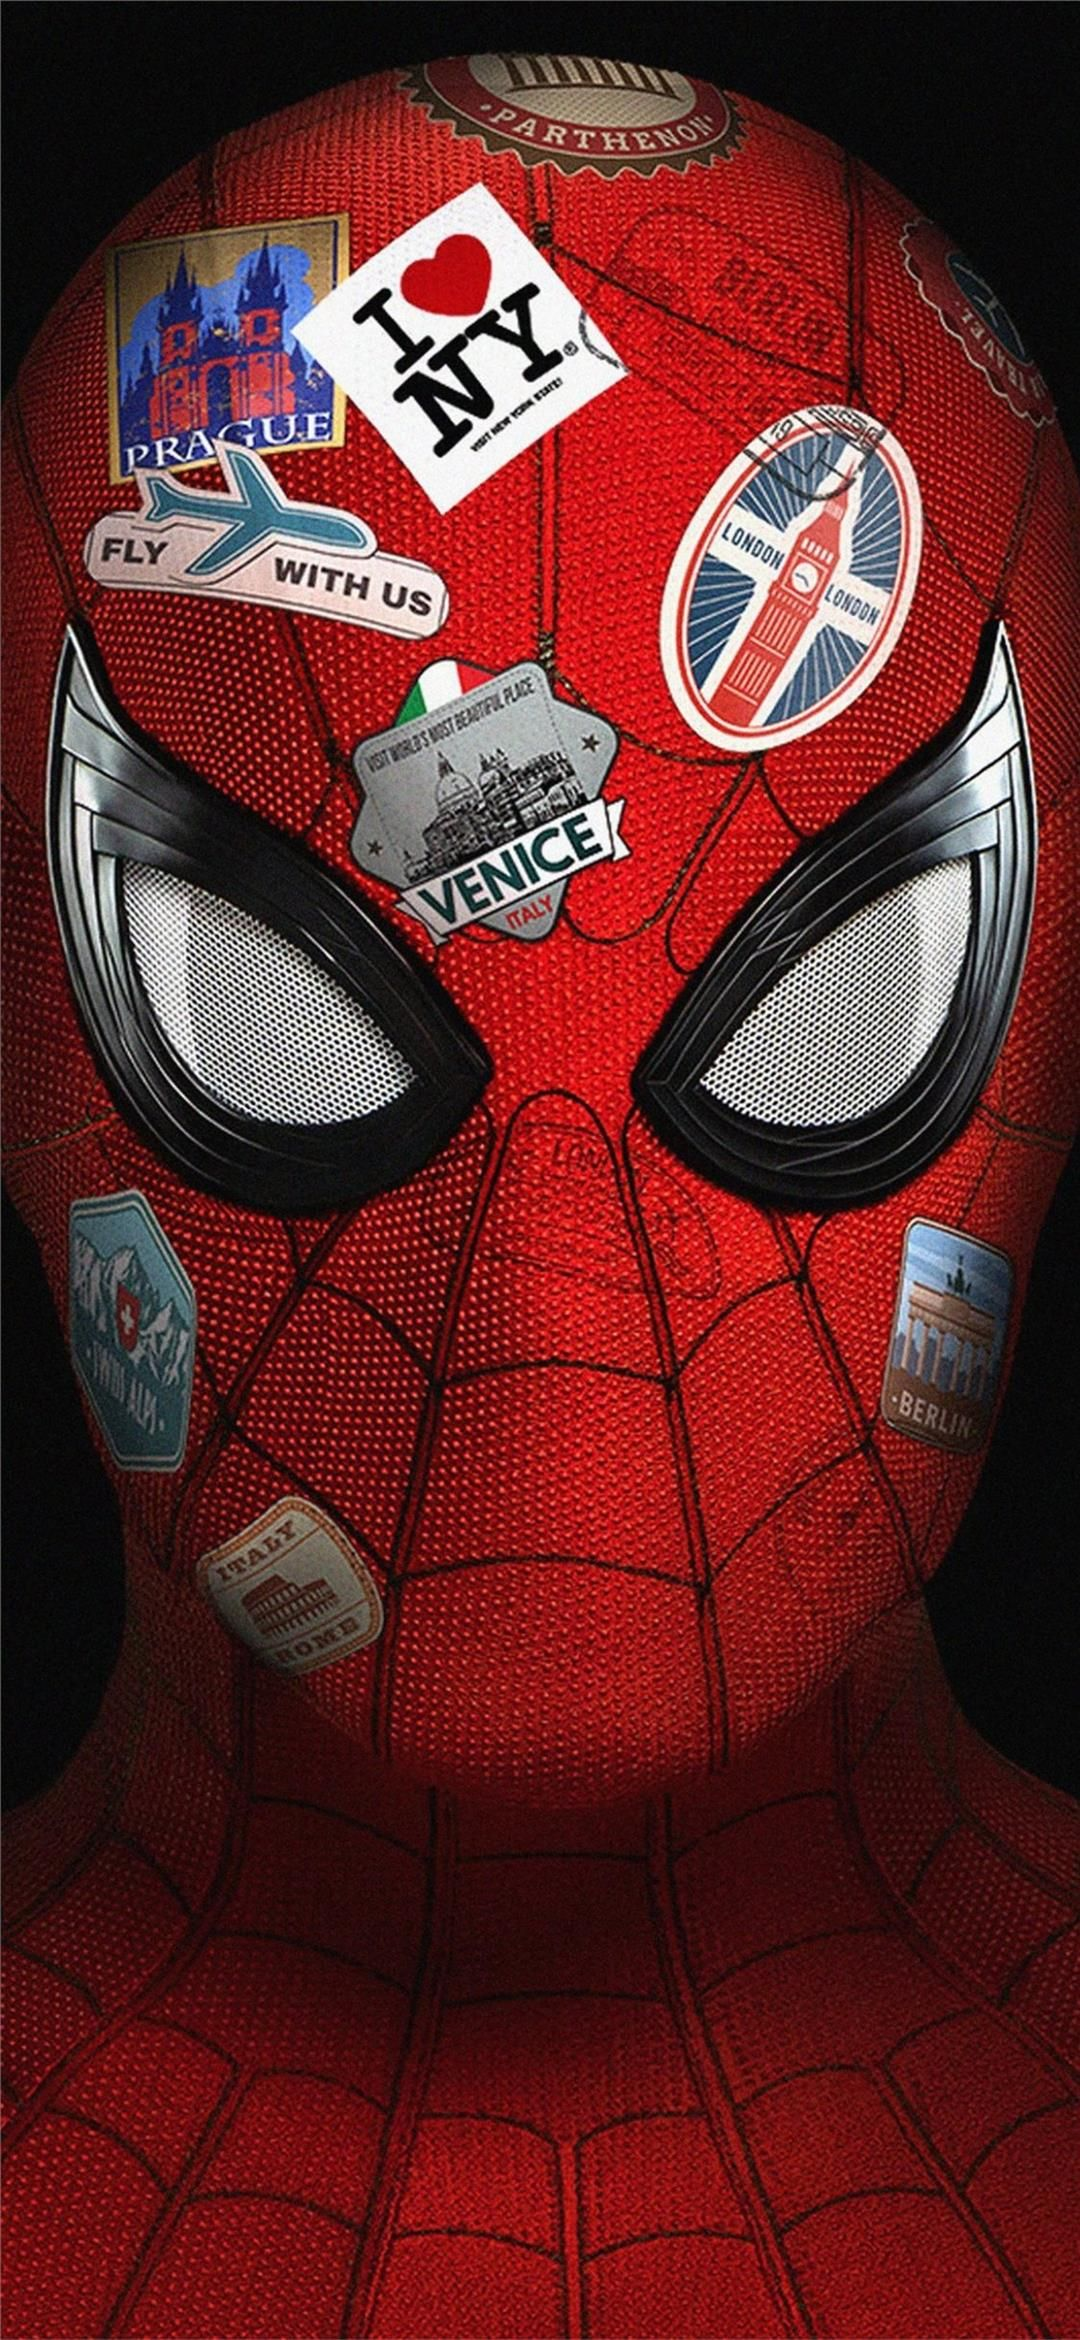 4k Spider Far From Home Xiaomi Redmi Note 8 Pro Wallpapers In 2020